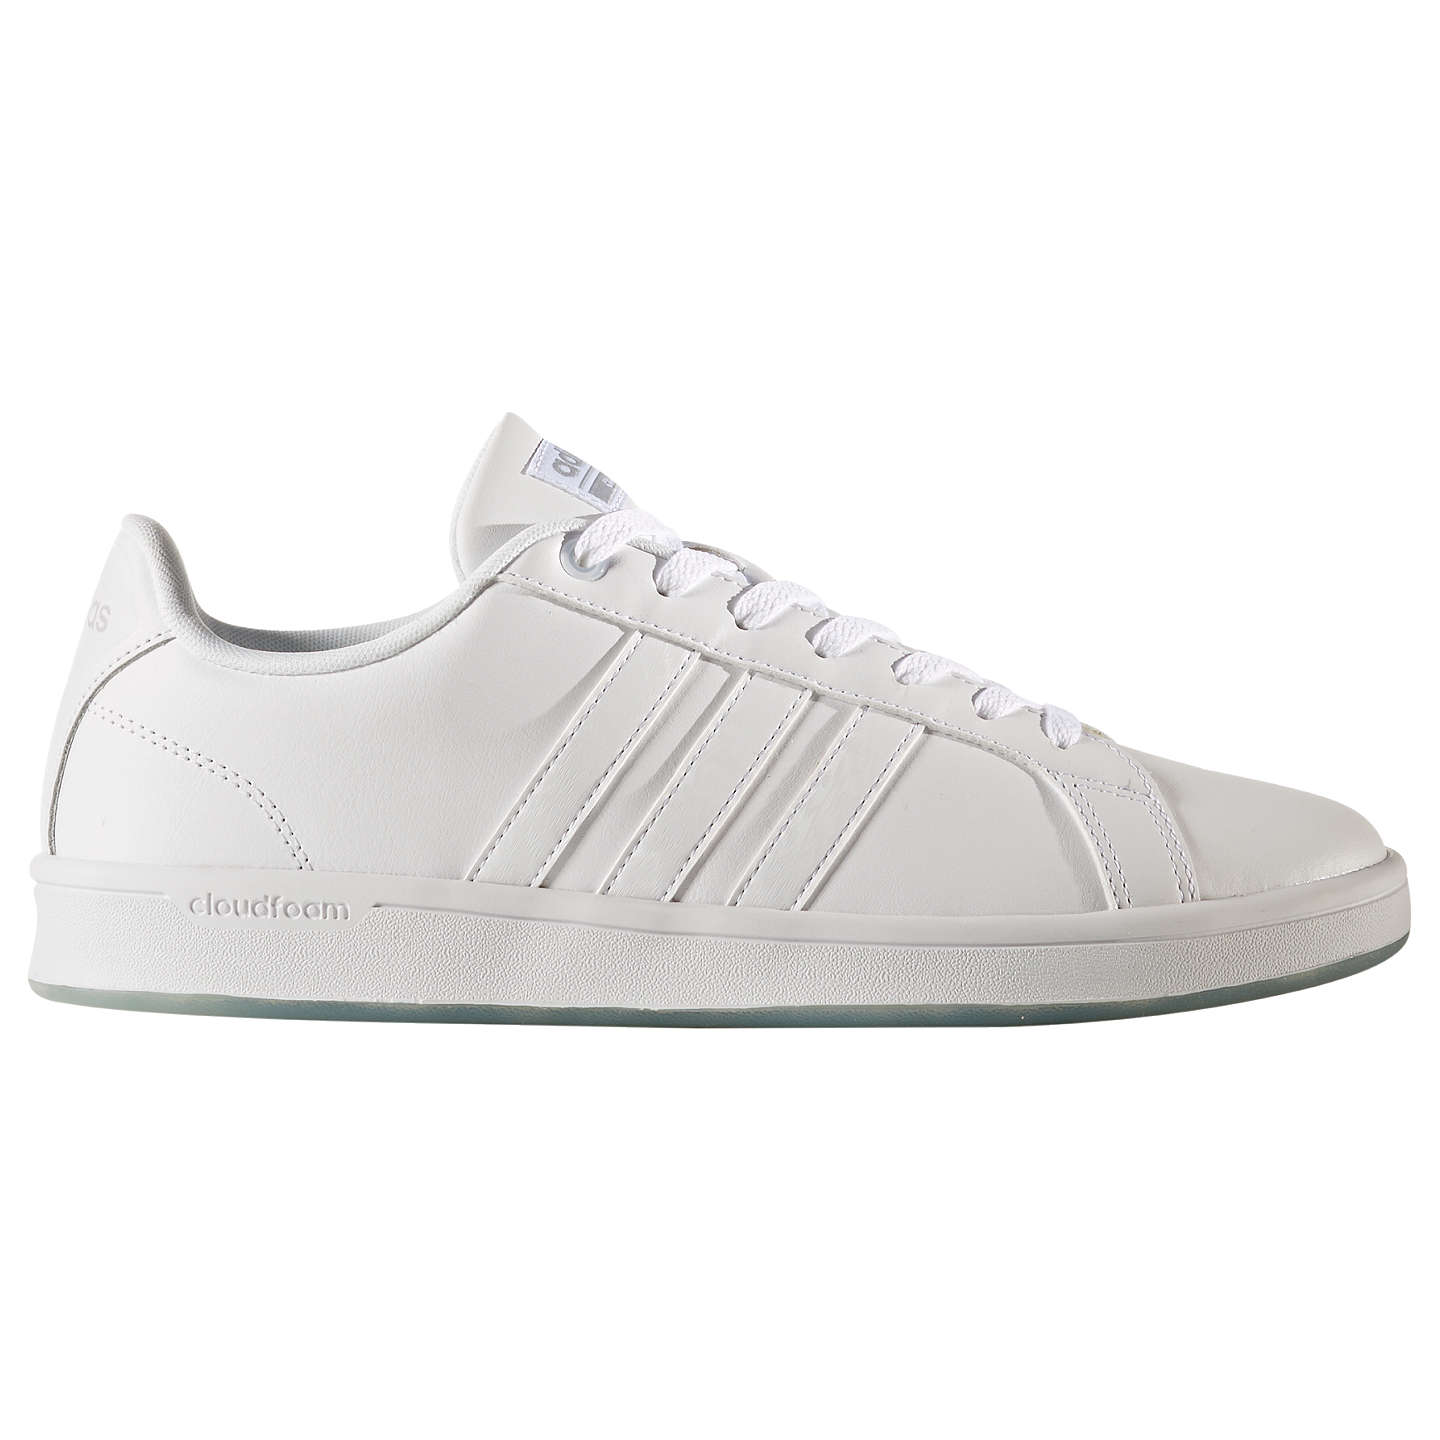 adidas neo cloudfoam trainers